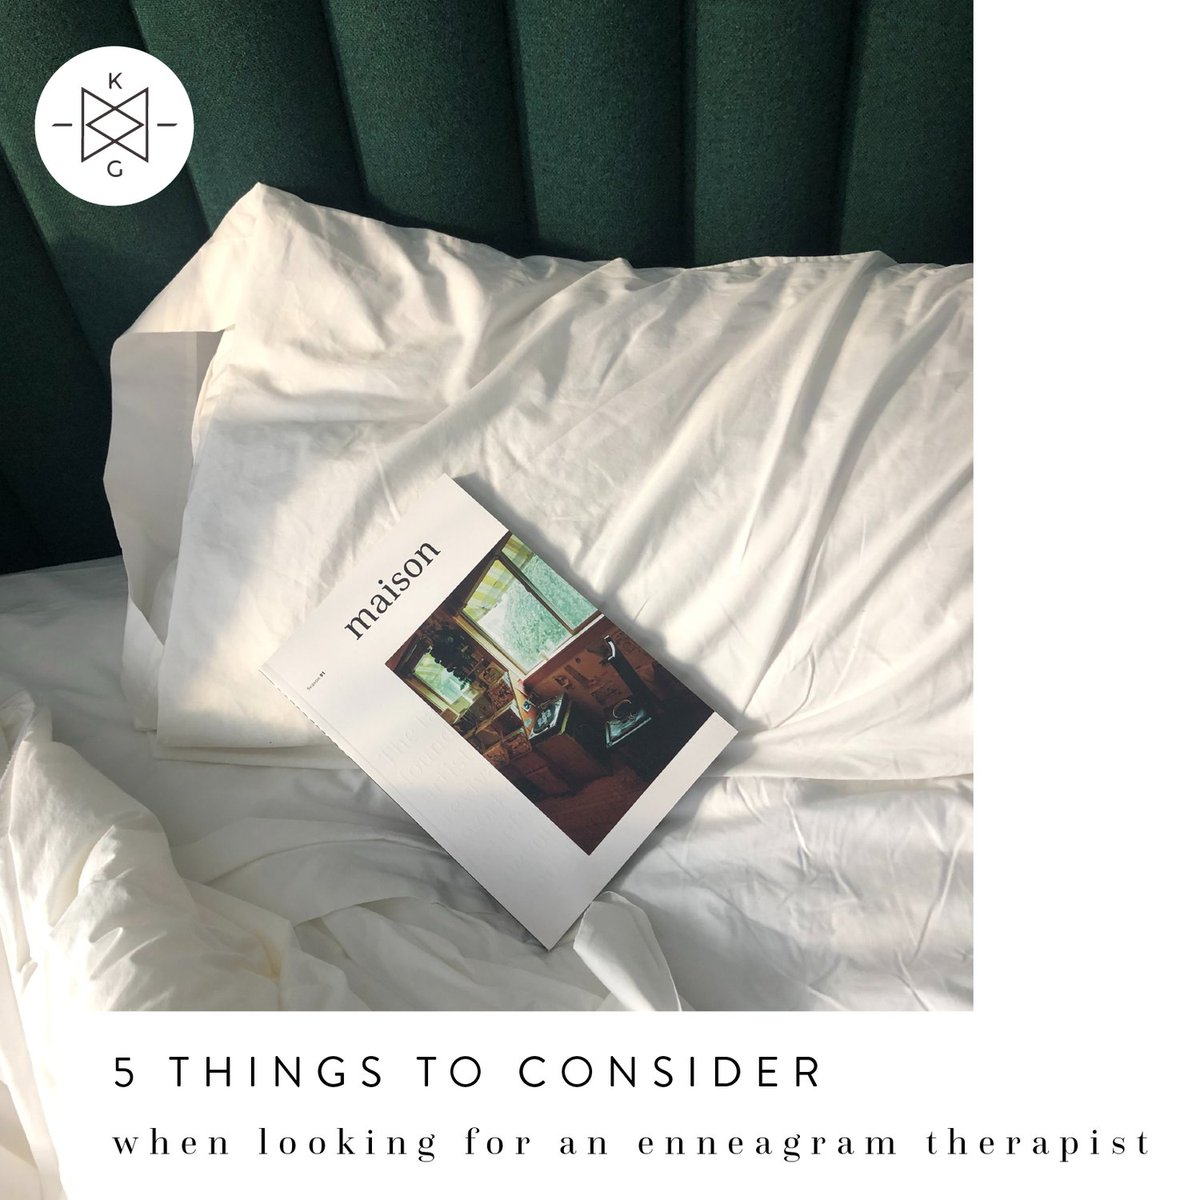 5 Things to Consider When Seeking an Enneagram Therapist  View Blog: https://t.co/4vP6pExpyX  #enneagram #Therapist #selfcare #personalgrowth https://t.co/ov6FeAfhPu